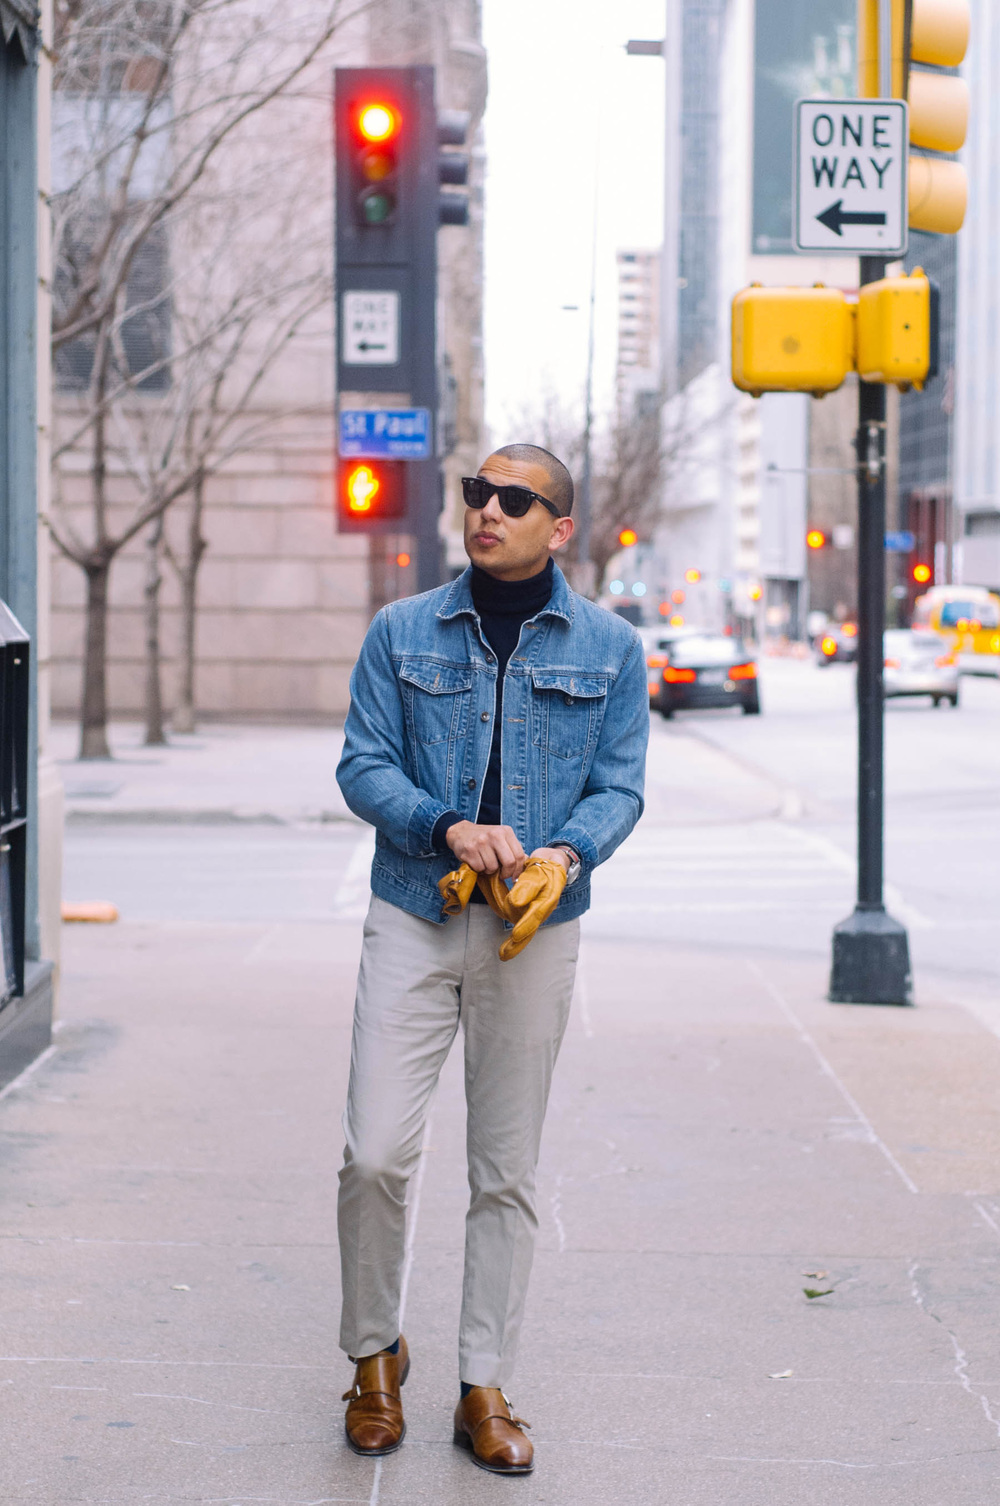 Denim Jacket: Old Navy (similar  here ) | Turtleneck:  J.Crew  | Pants:  J.Crew  | Shoes:  Magnanni  | Gloves: Jack Spade (GREAT and affordable  alternative here ) | Sunglasses:  RayBan